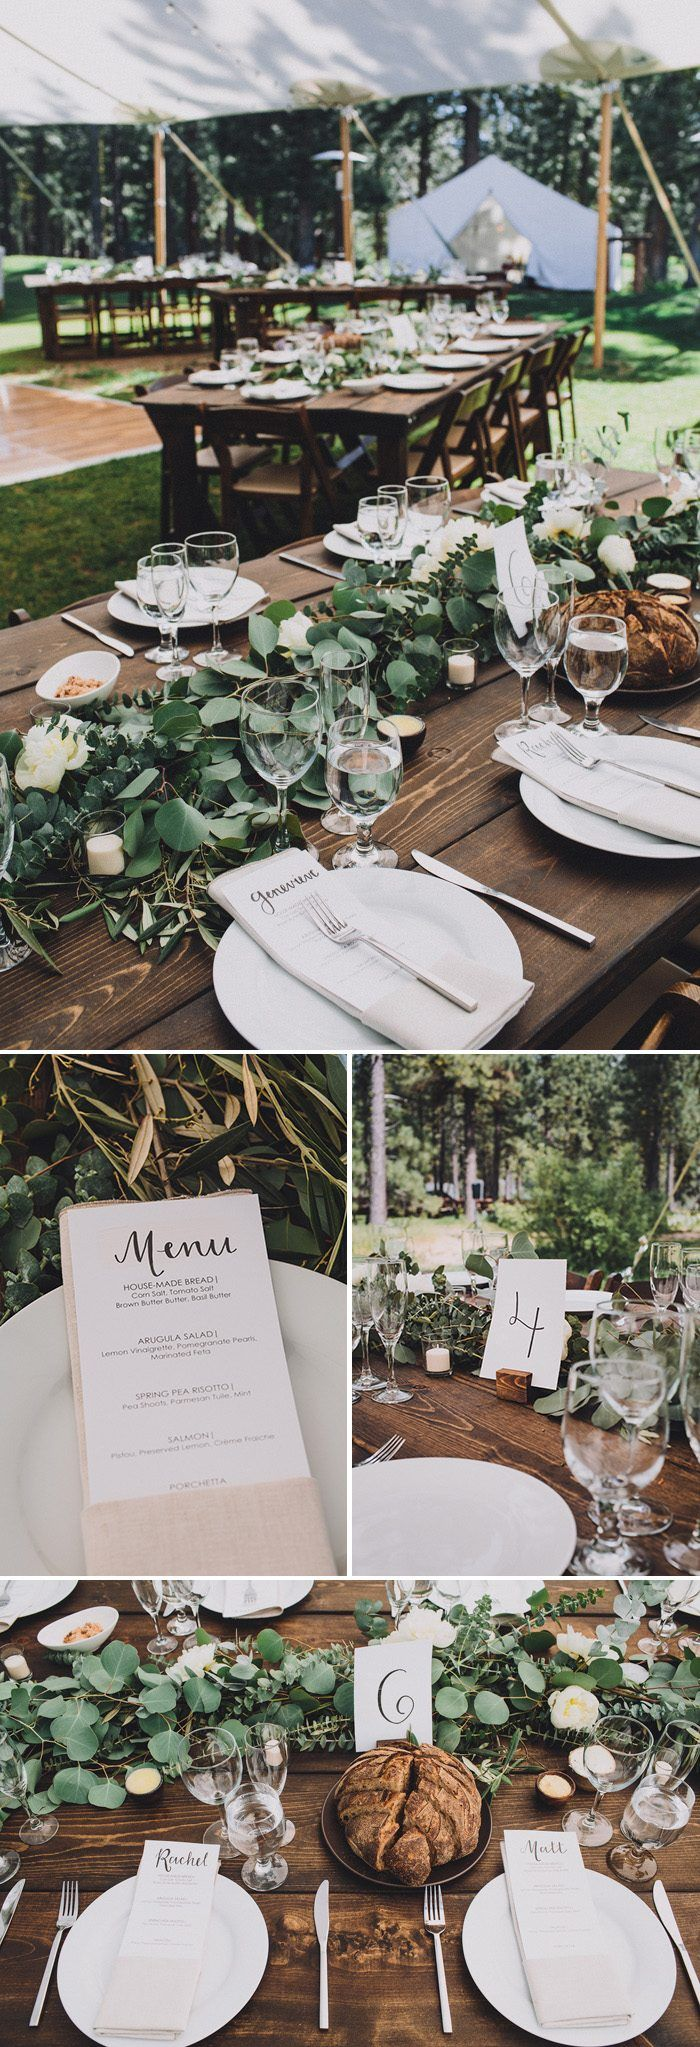 Gorgeous lush garland and dark wood tables match the organic + minimal vibe of this forest wedding reception | Image by Mandee Johnson Photography #weddingphotoinspiration #weddingphotoideas #forestwedding #centerpieces #reception #weddingreception #weddingreceptioninspo #receptioninspiration #receptiondecor #receptioninspo #finishingtouches #weddingdecor #tablescape #floraldesign